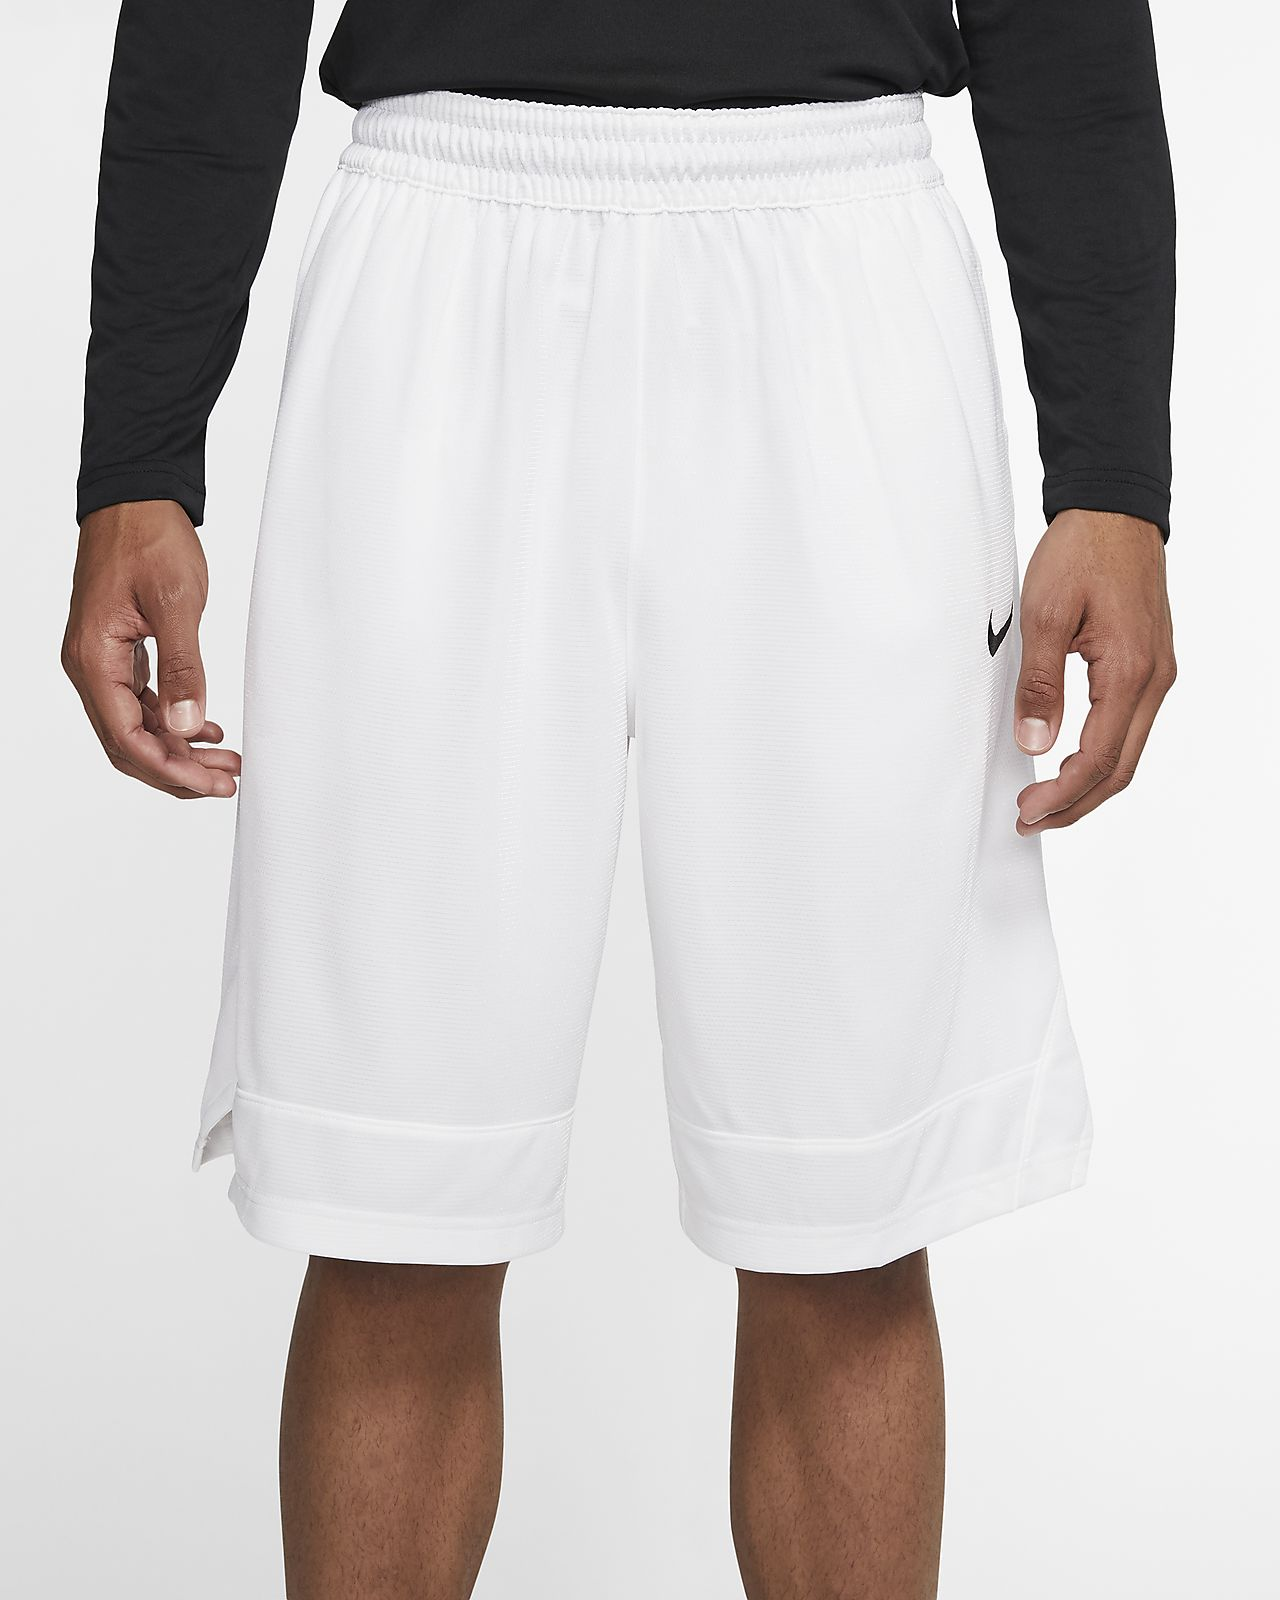 Nike Dri FIT Icon Men's Basketball Shorts